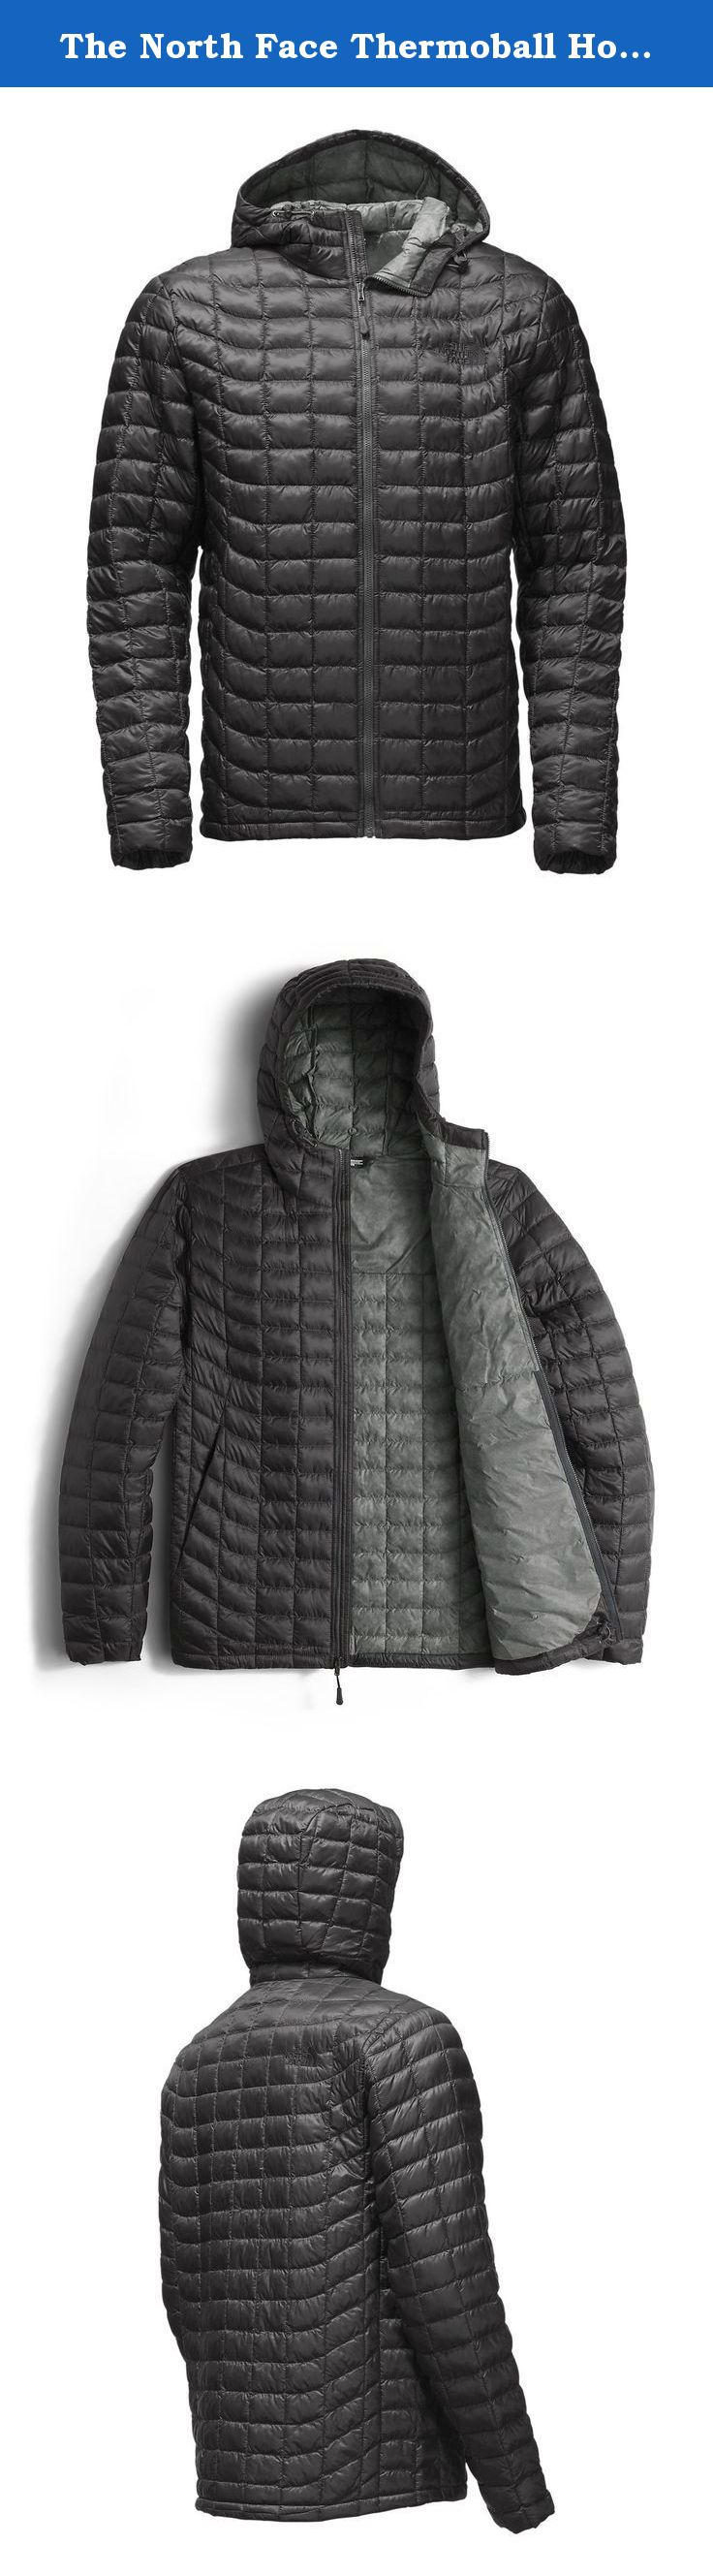 8bc271c83 The North Face Thermoball Hoodie Jacket - Men's Asphalt Grey/Fusebox ...